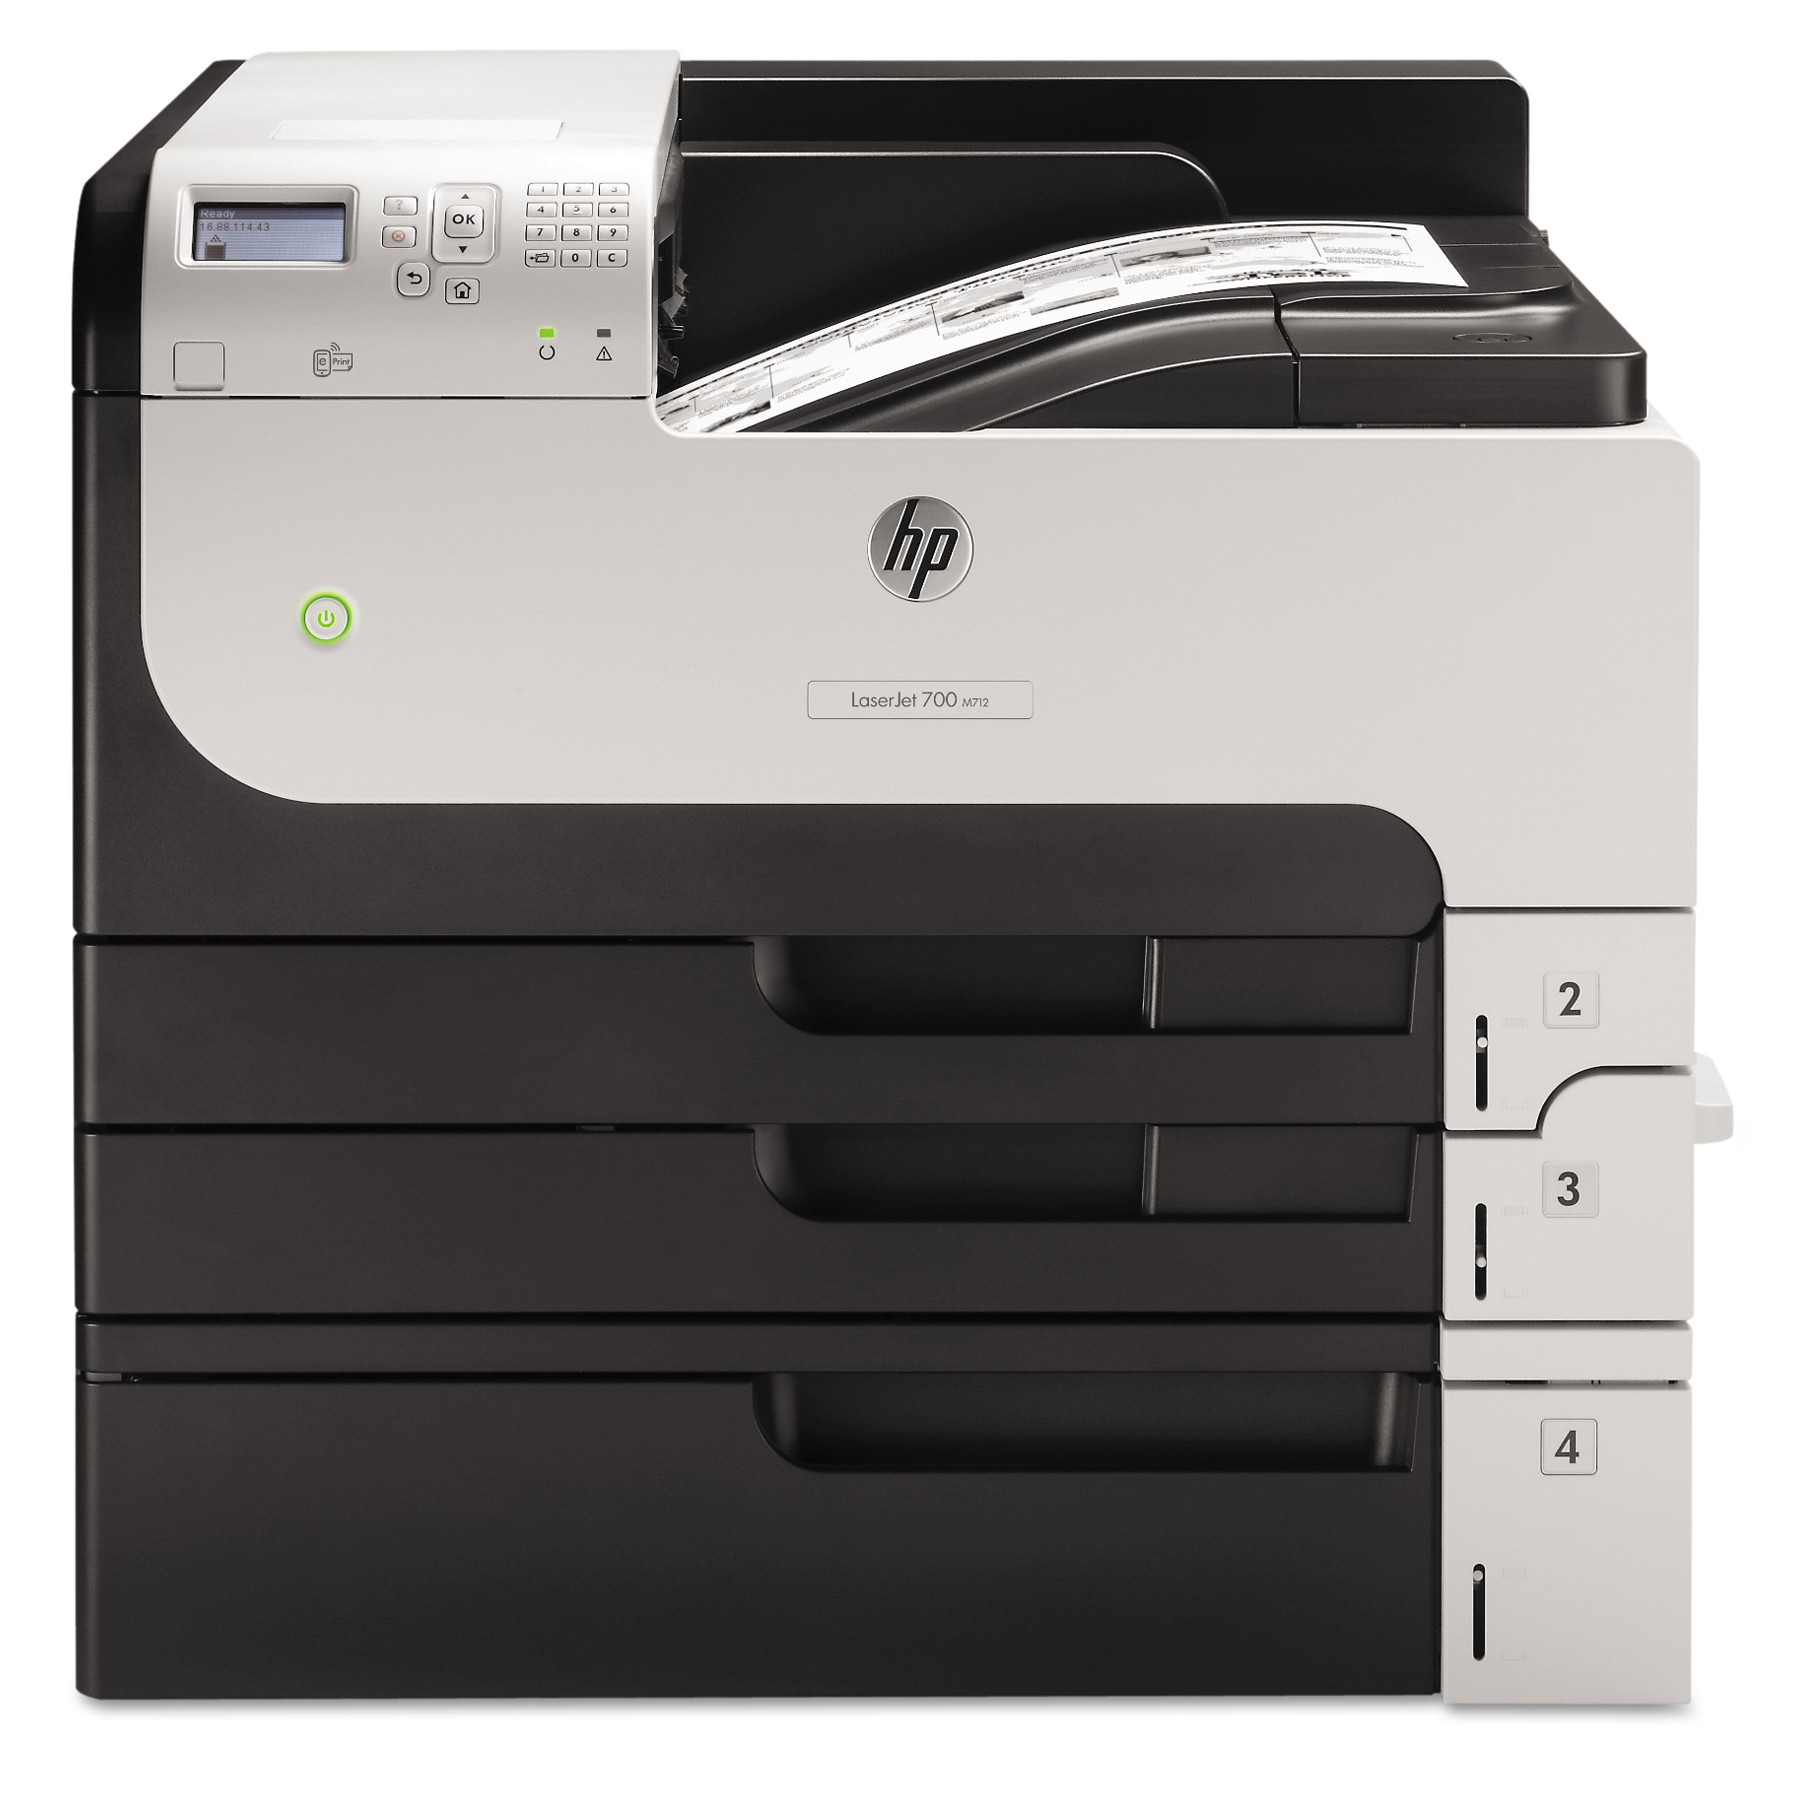 HP LaserJet Enterprise 700 M712xh Laser Printer by HP